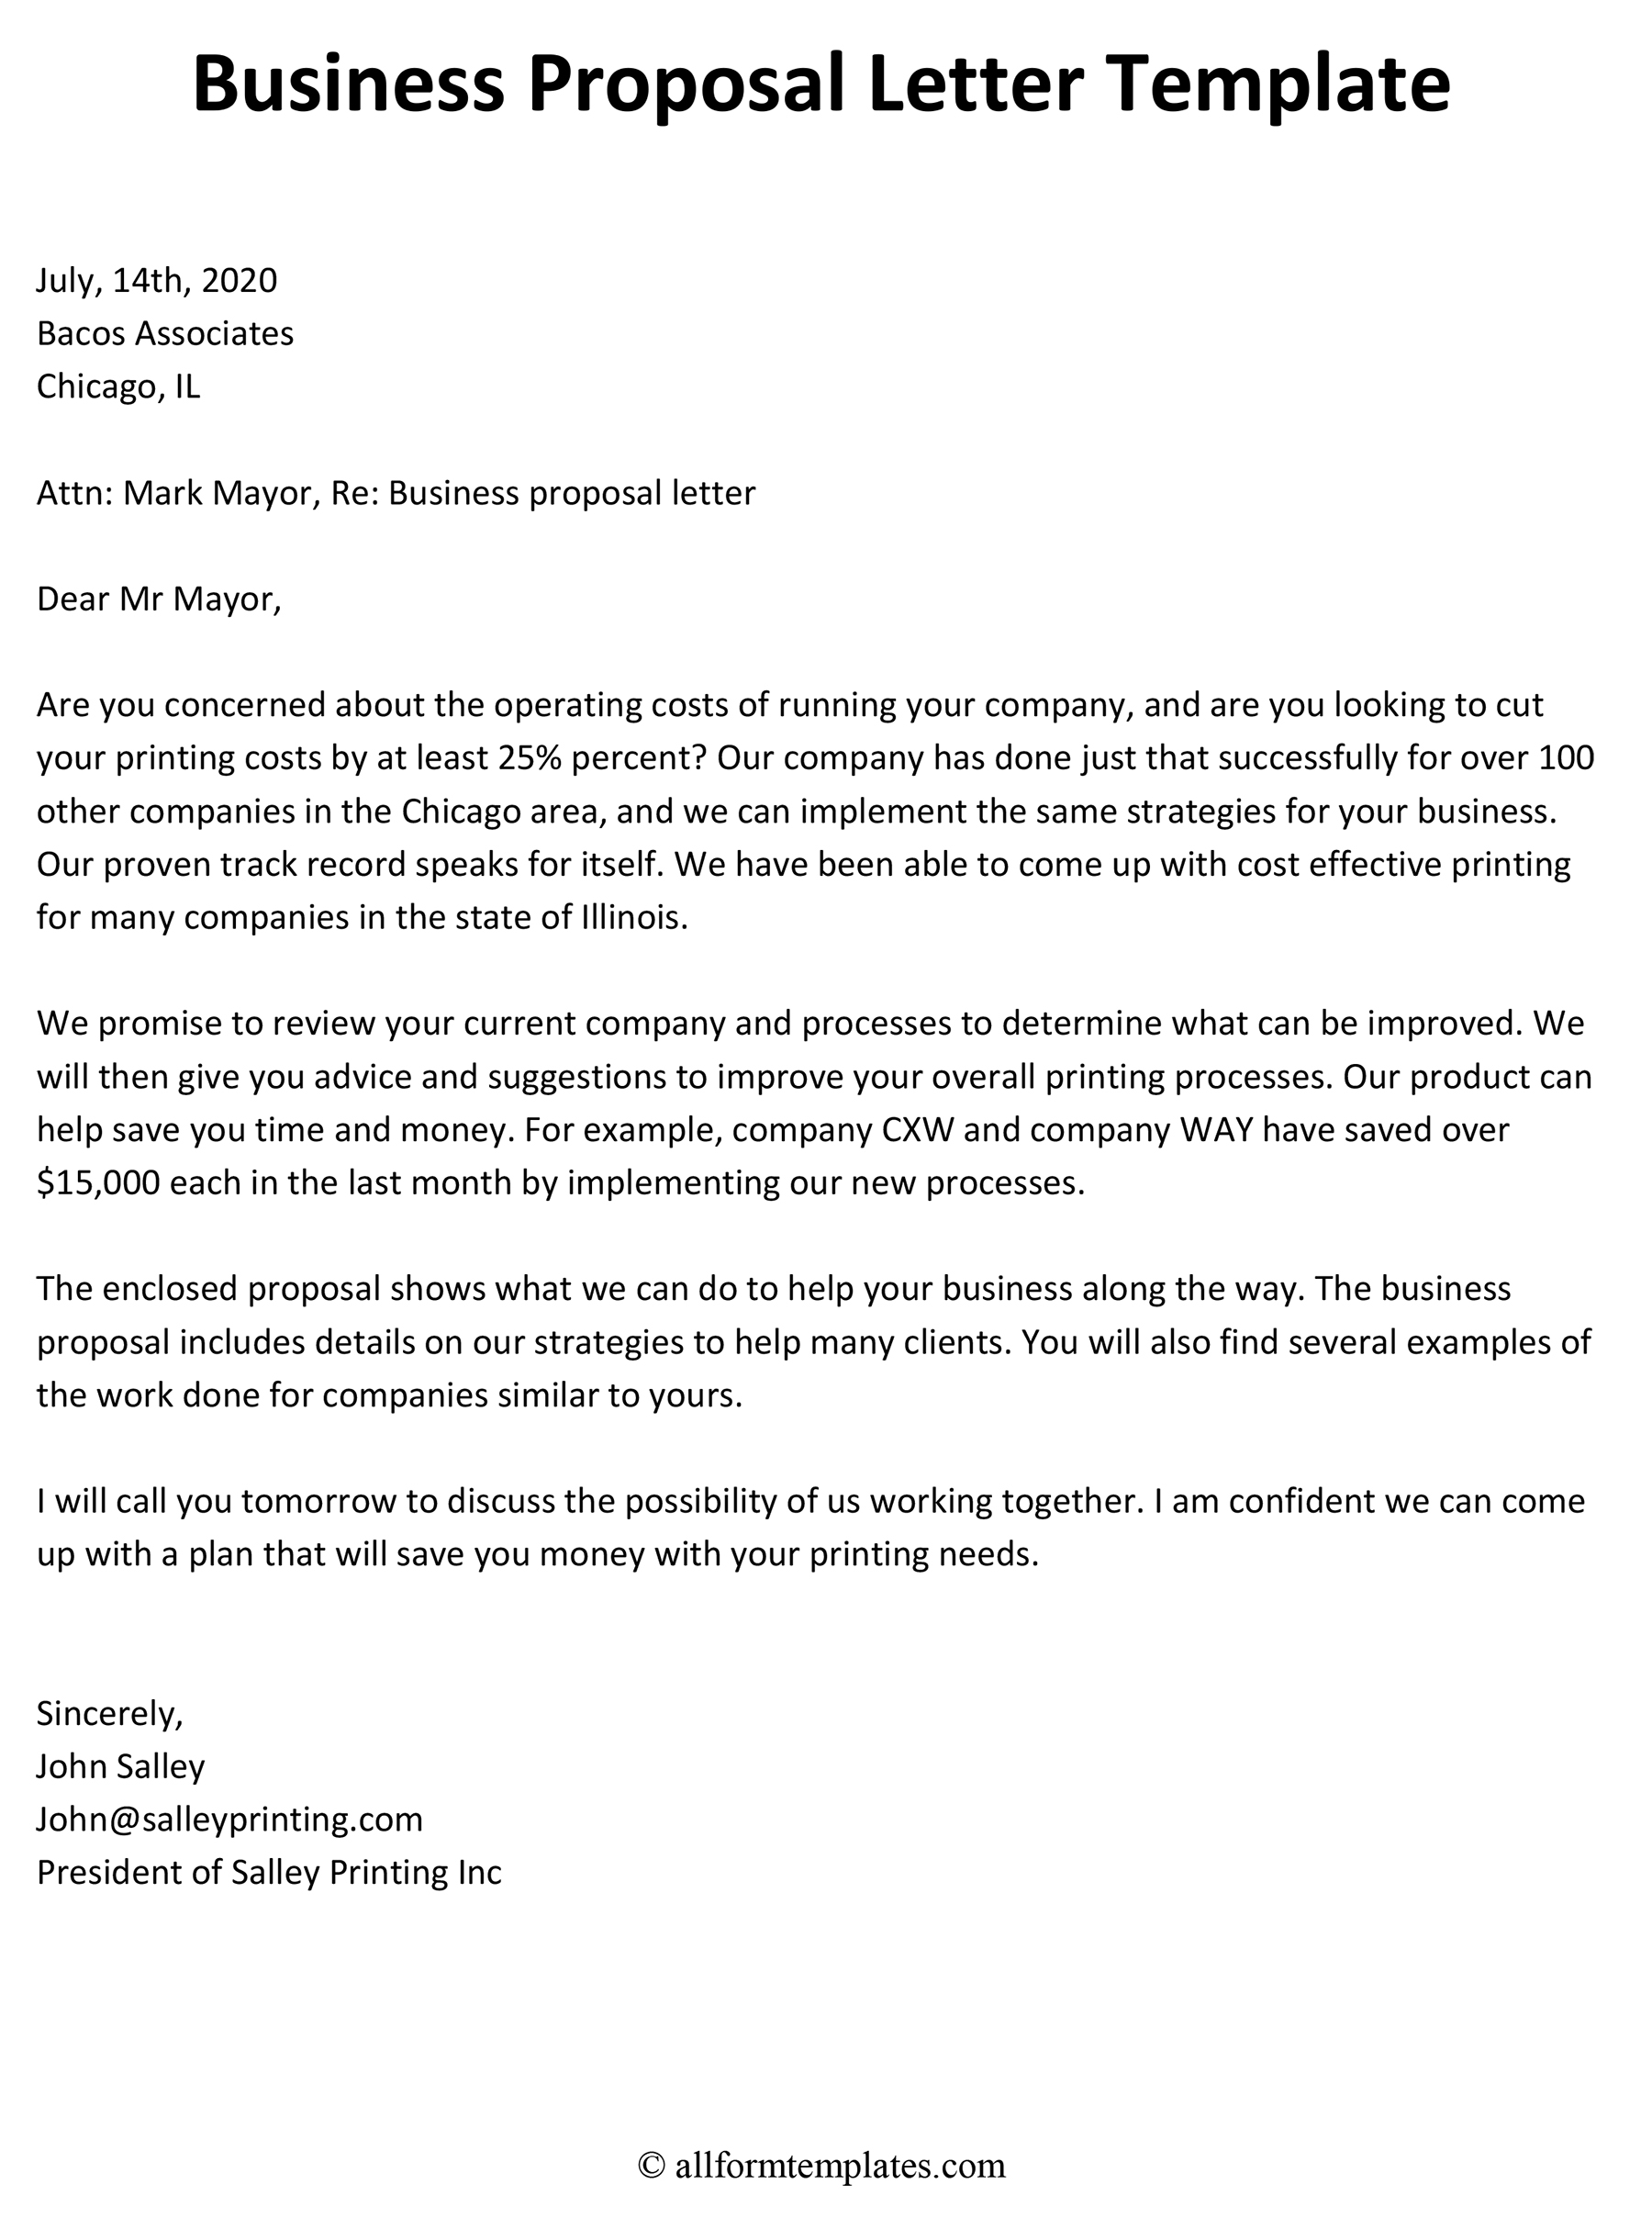 Business-Proposal-Letter-03-HD